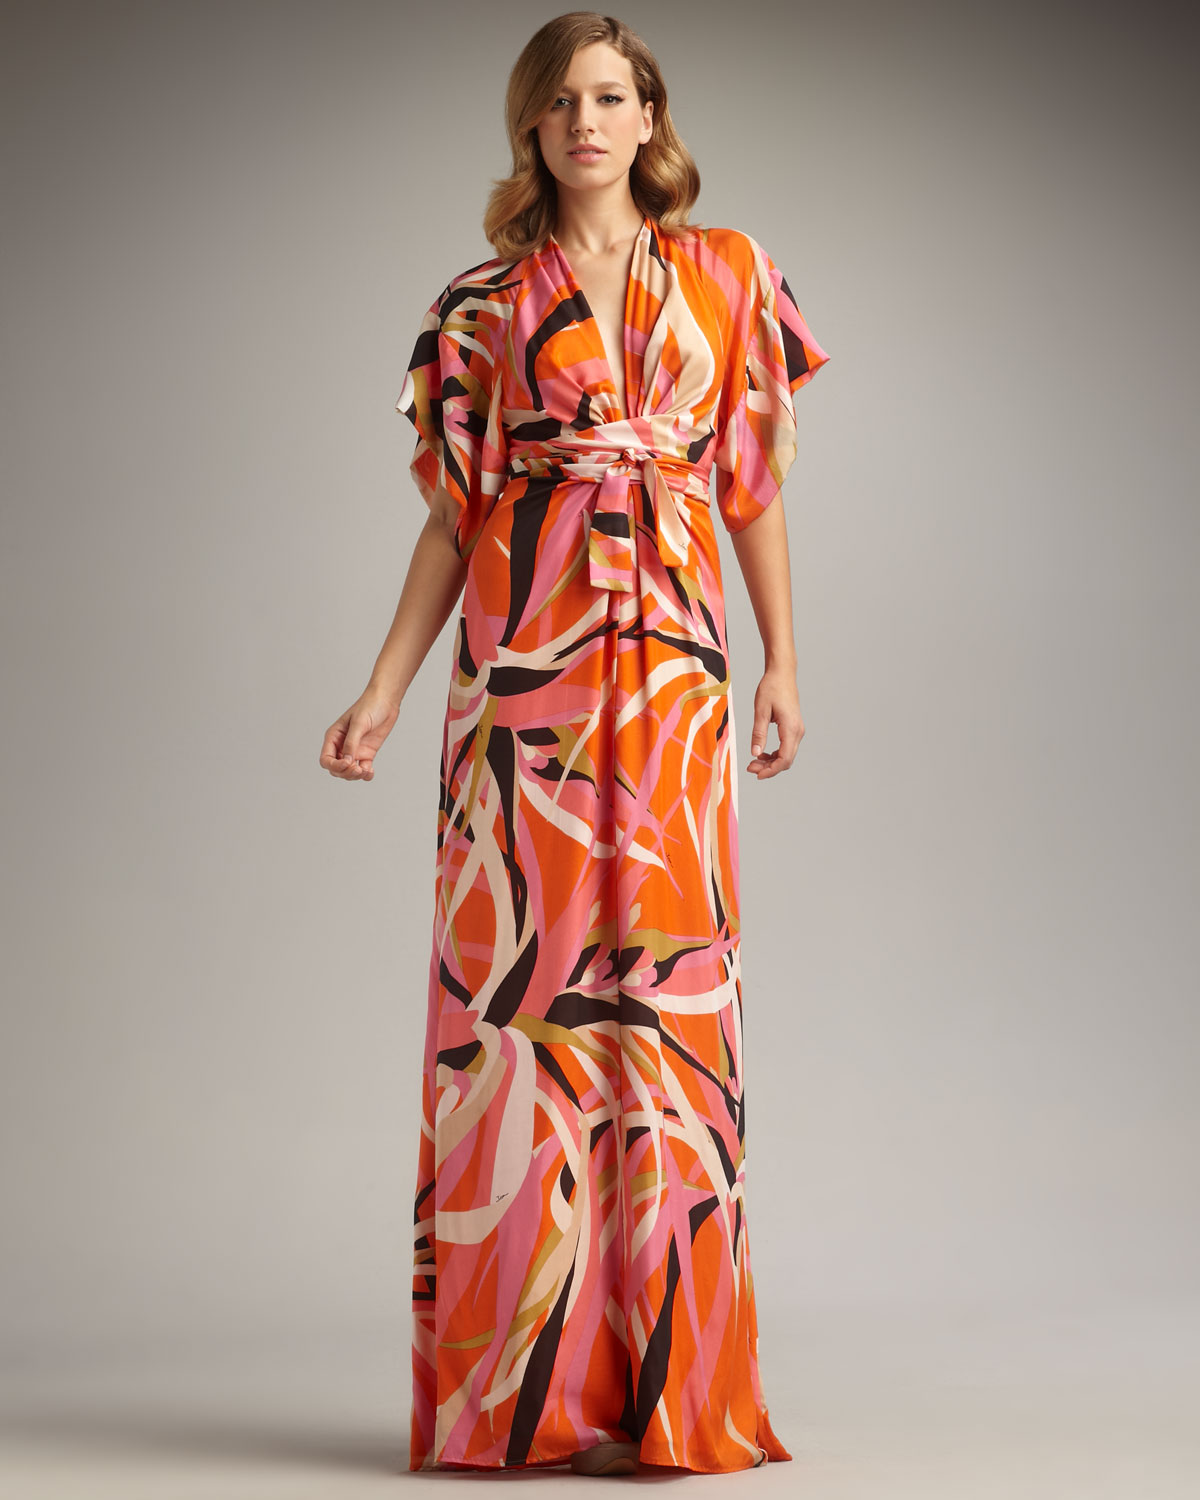 Jersey Maxi Dresses With Short Sleeves – DACC